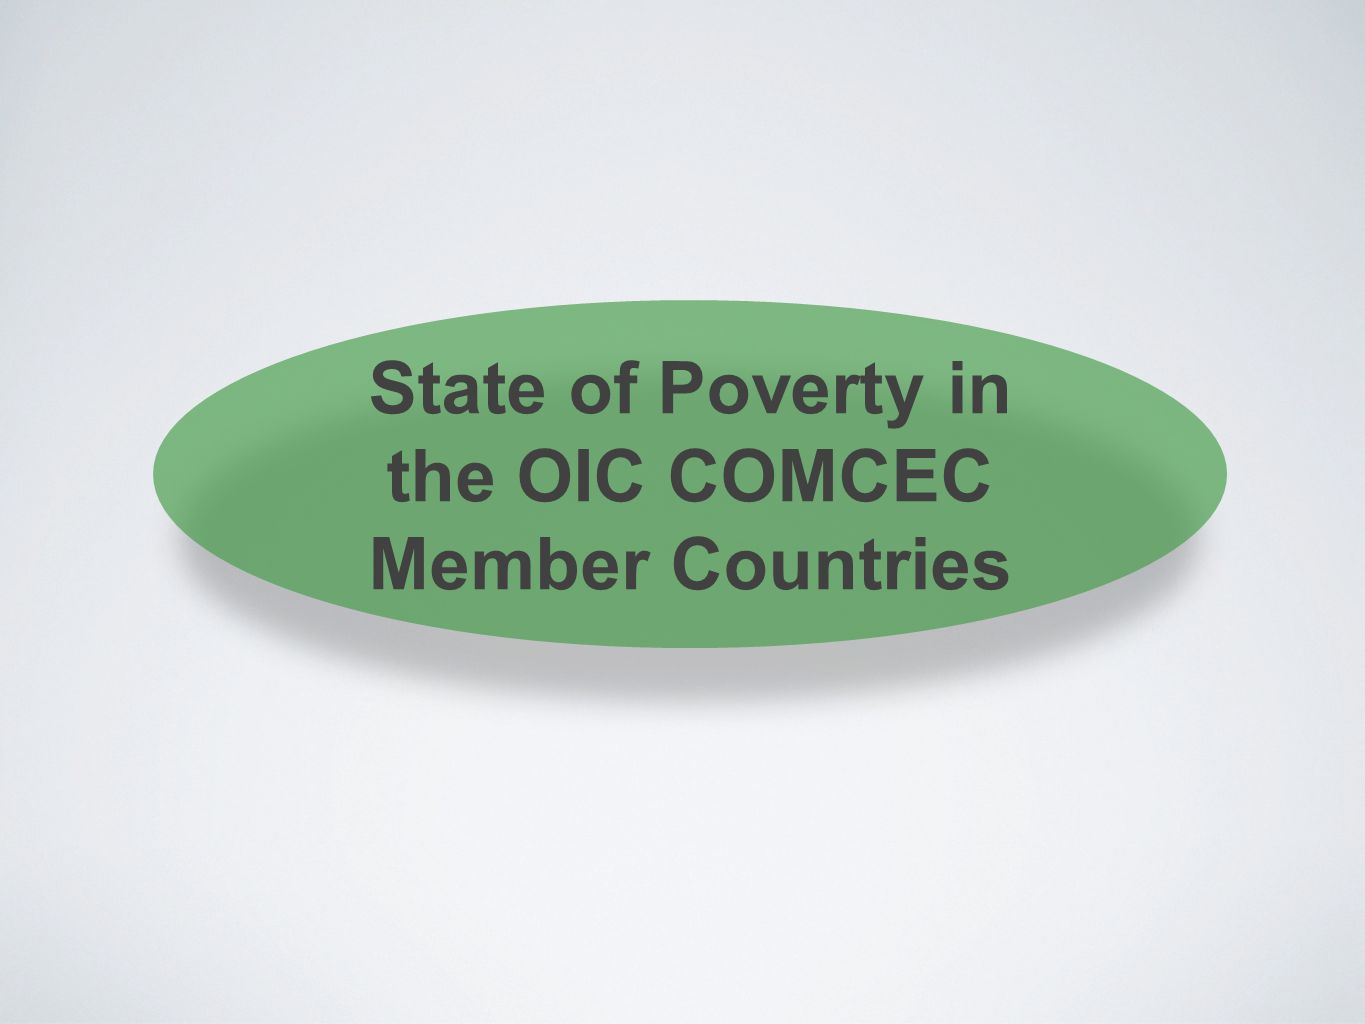 State of Poverty in the OIC COMCEC Member Countries